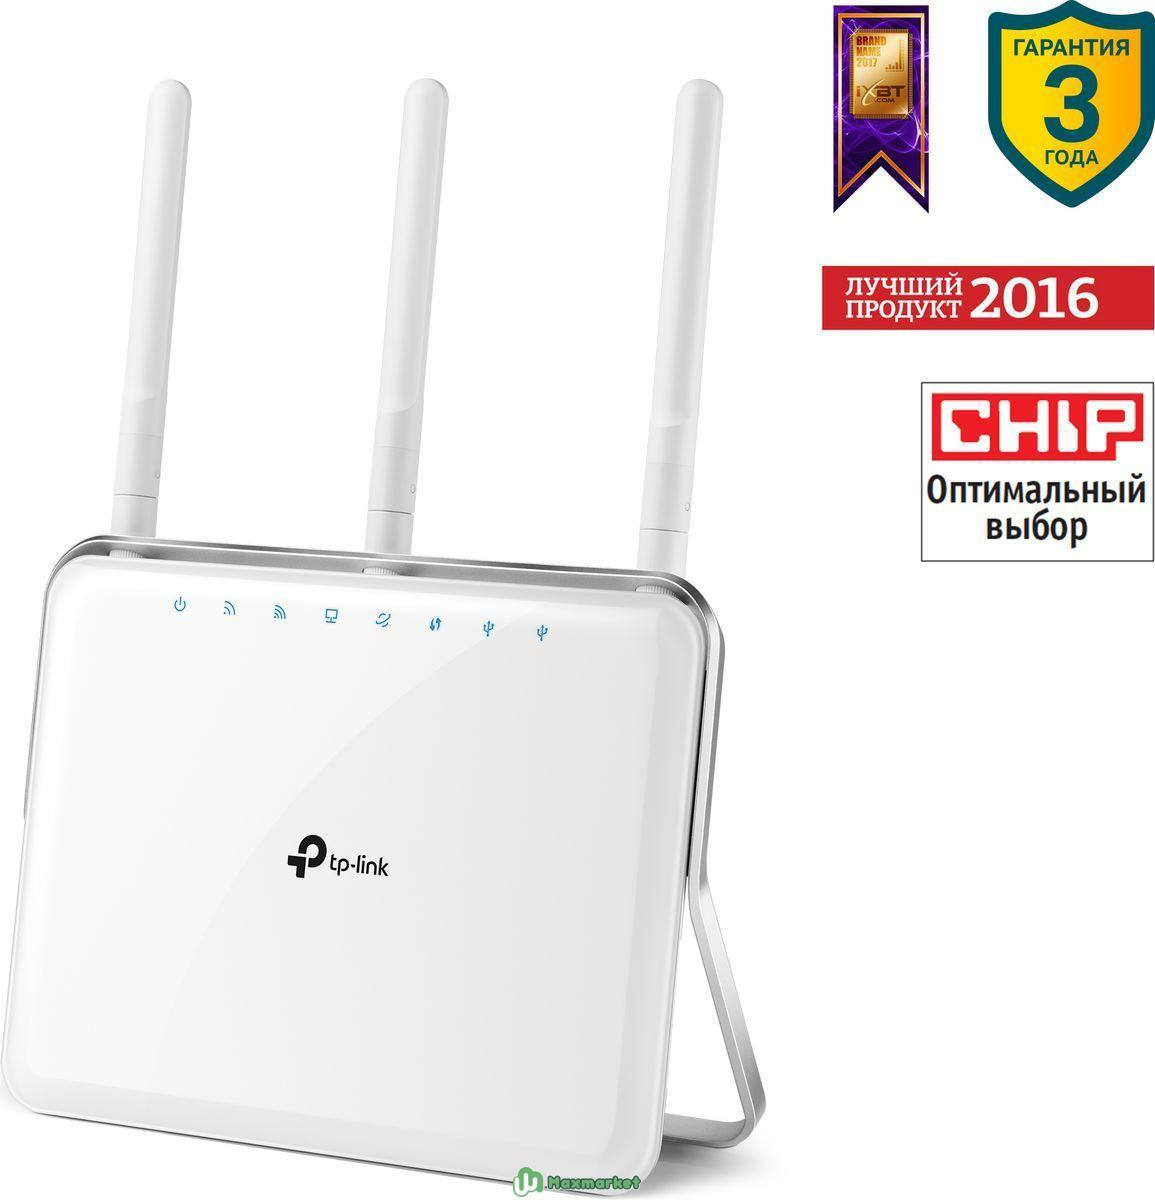 TP-Link Archer C9 маршрутизатор